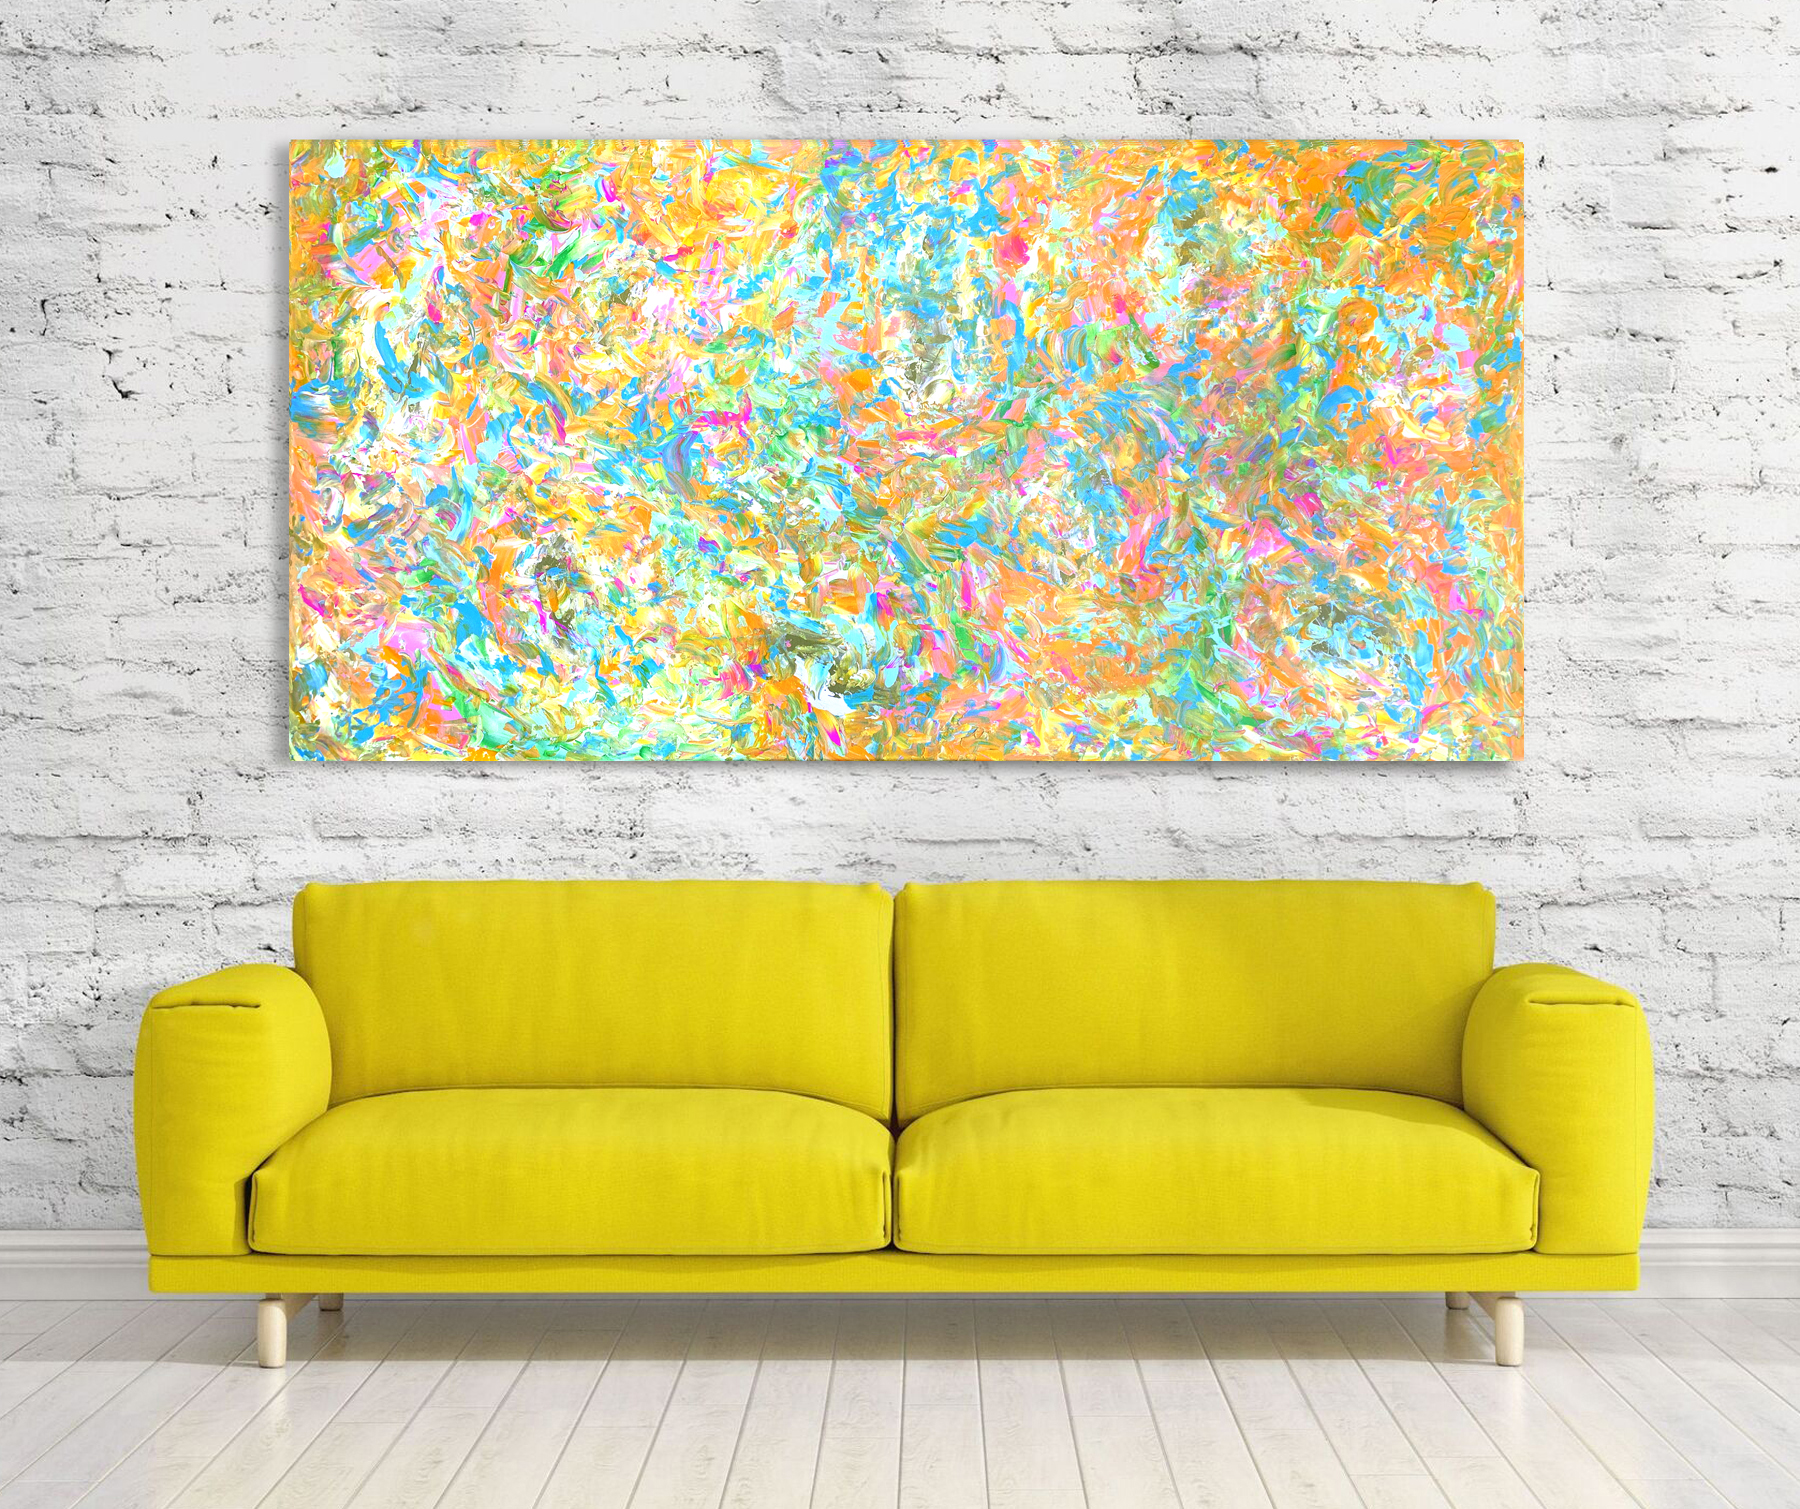 Darling Candy - Abstract Expressionism by Estelle Asmodelle